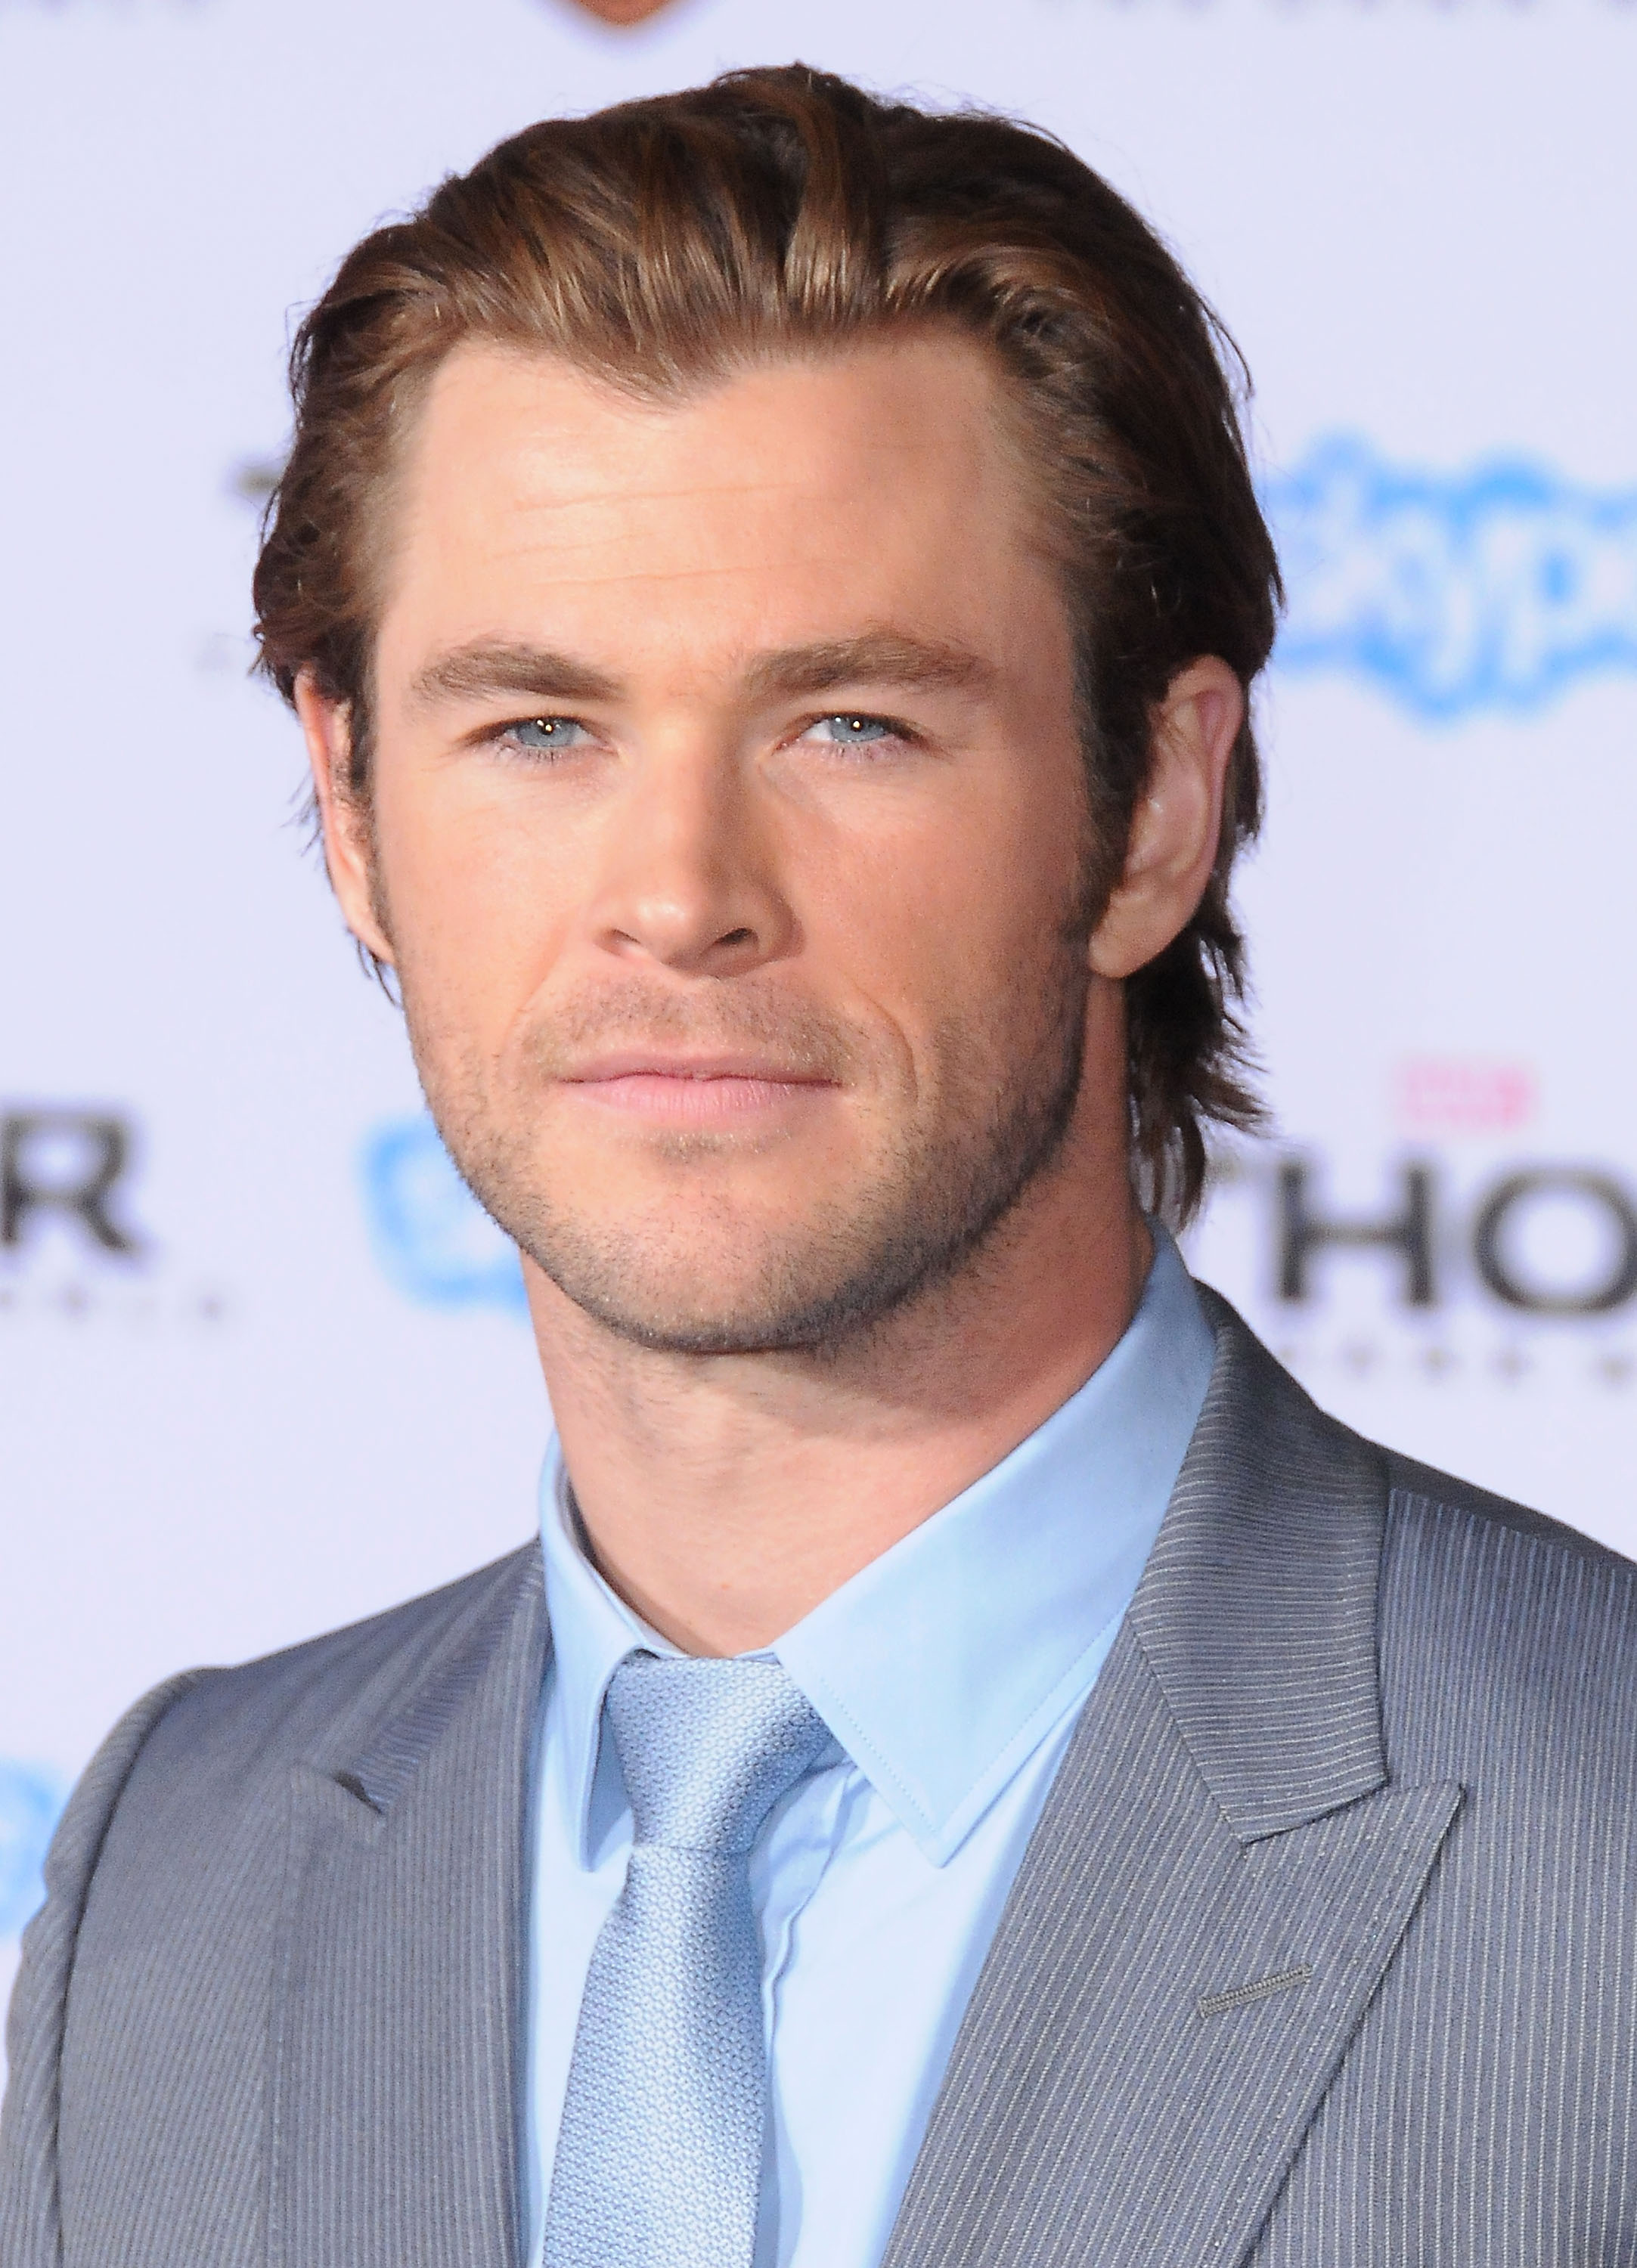 Chris Hemsworth - Thor - Top 10 Sexiest, Hottest Superheroes